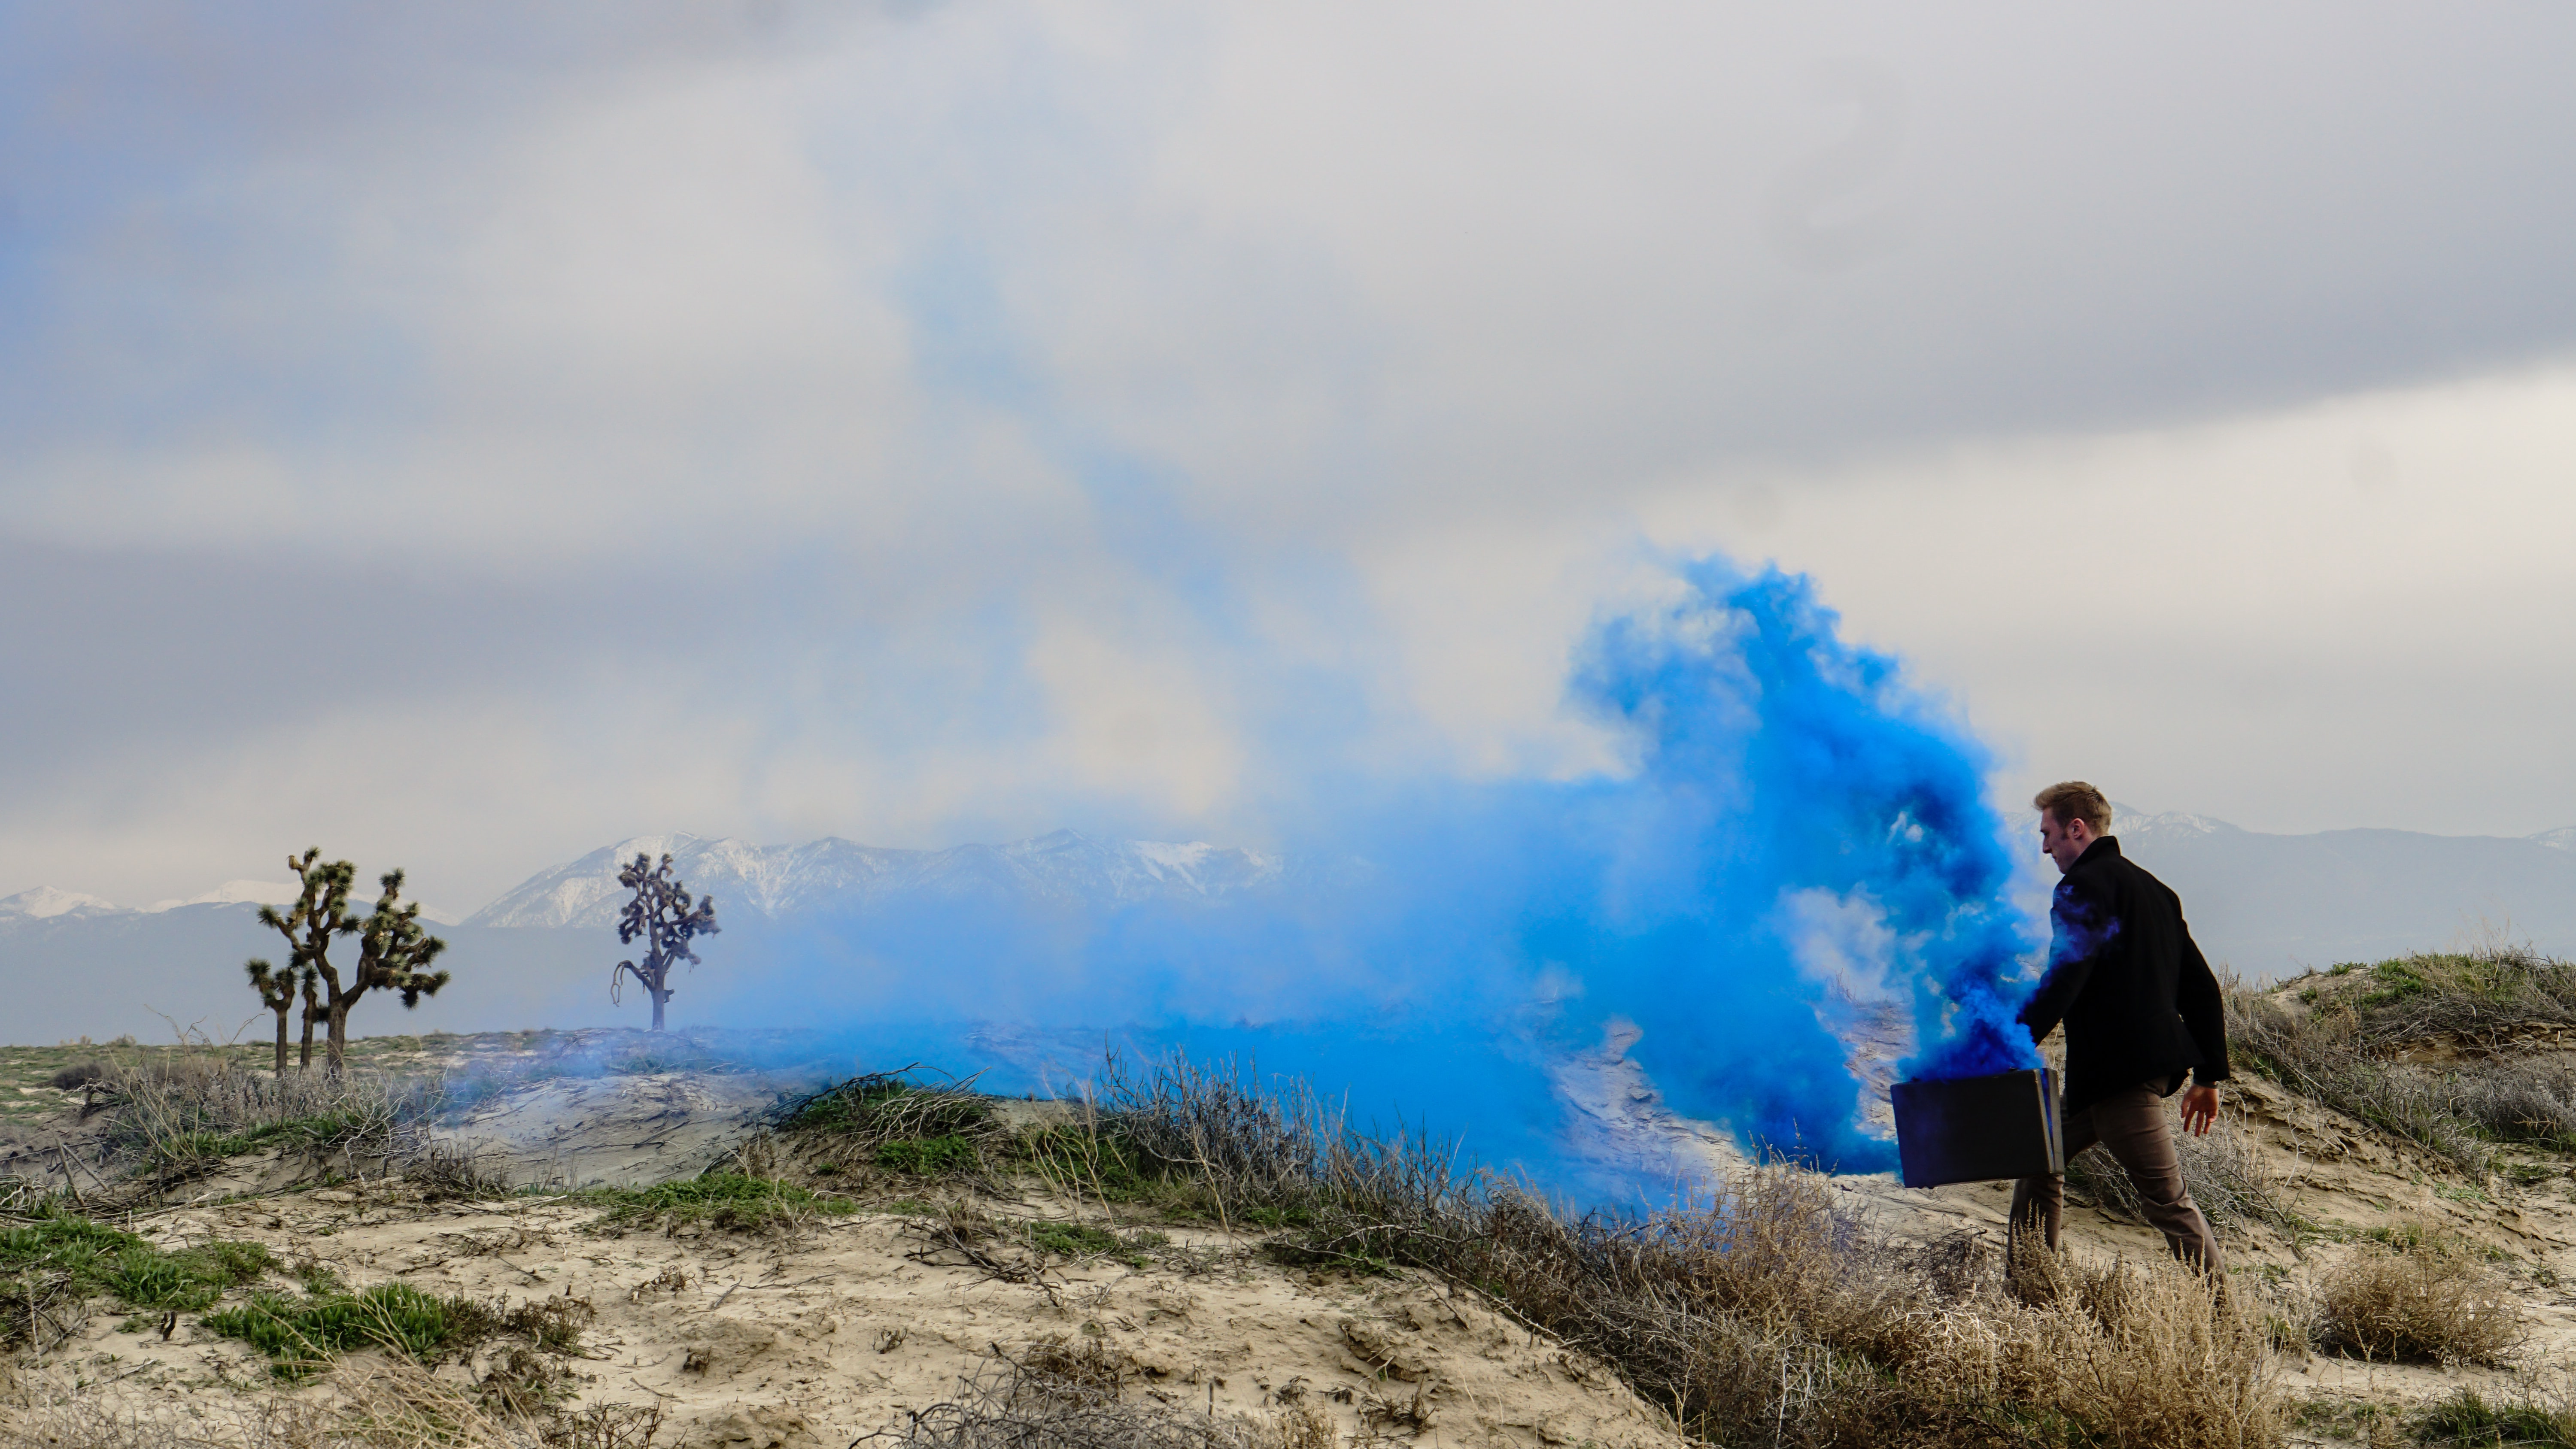 Thick blue smoke coming out of a suitcase carried by a man walking through the wilderness